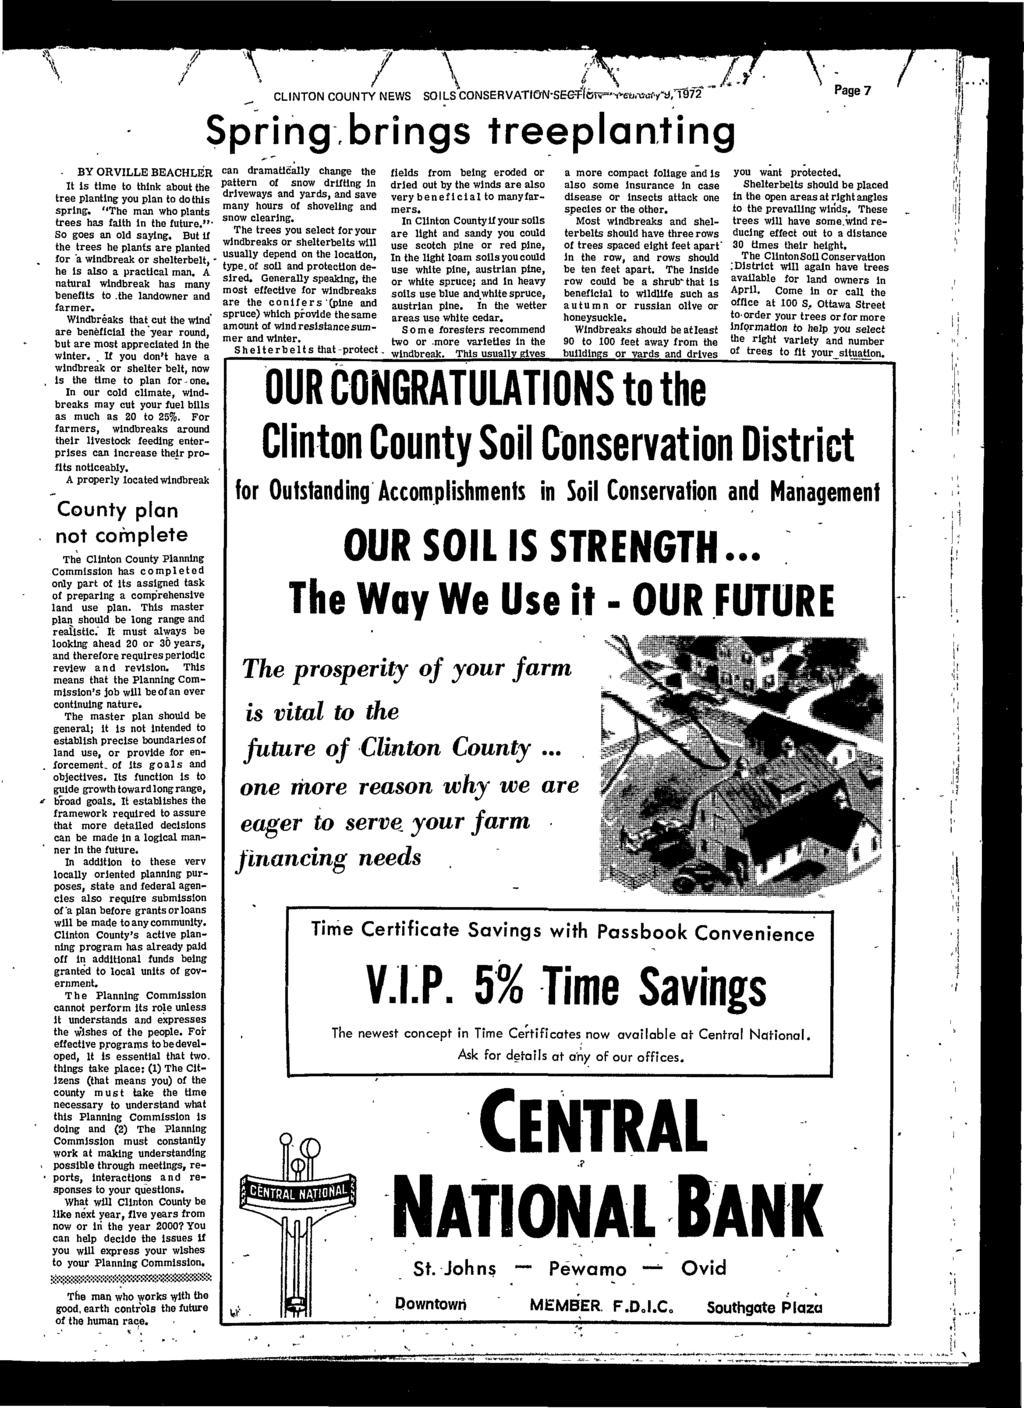 Clinton county news minqkhilcunhmqjisulbxalli5f wednesday by orville beachler it is time to think about the tree planting you plan to fandeluxe Image collections